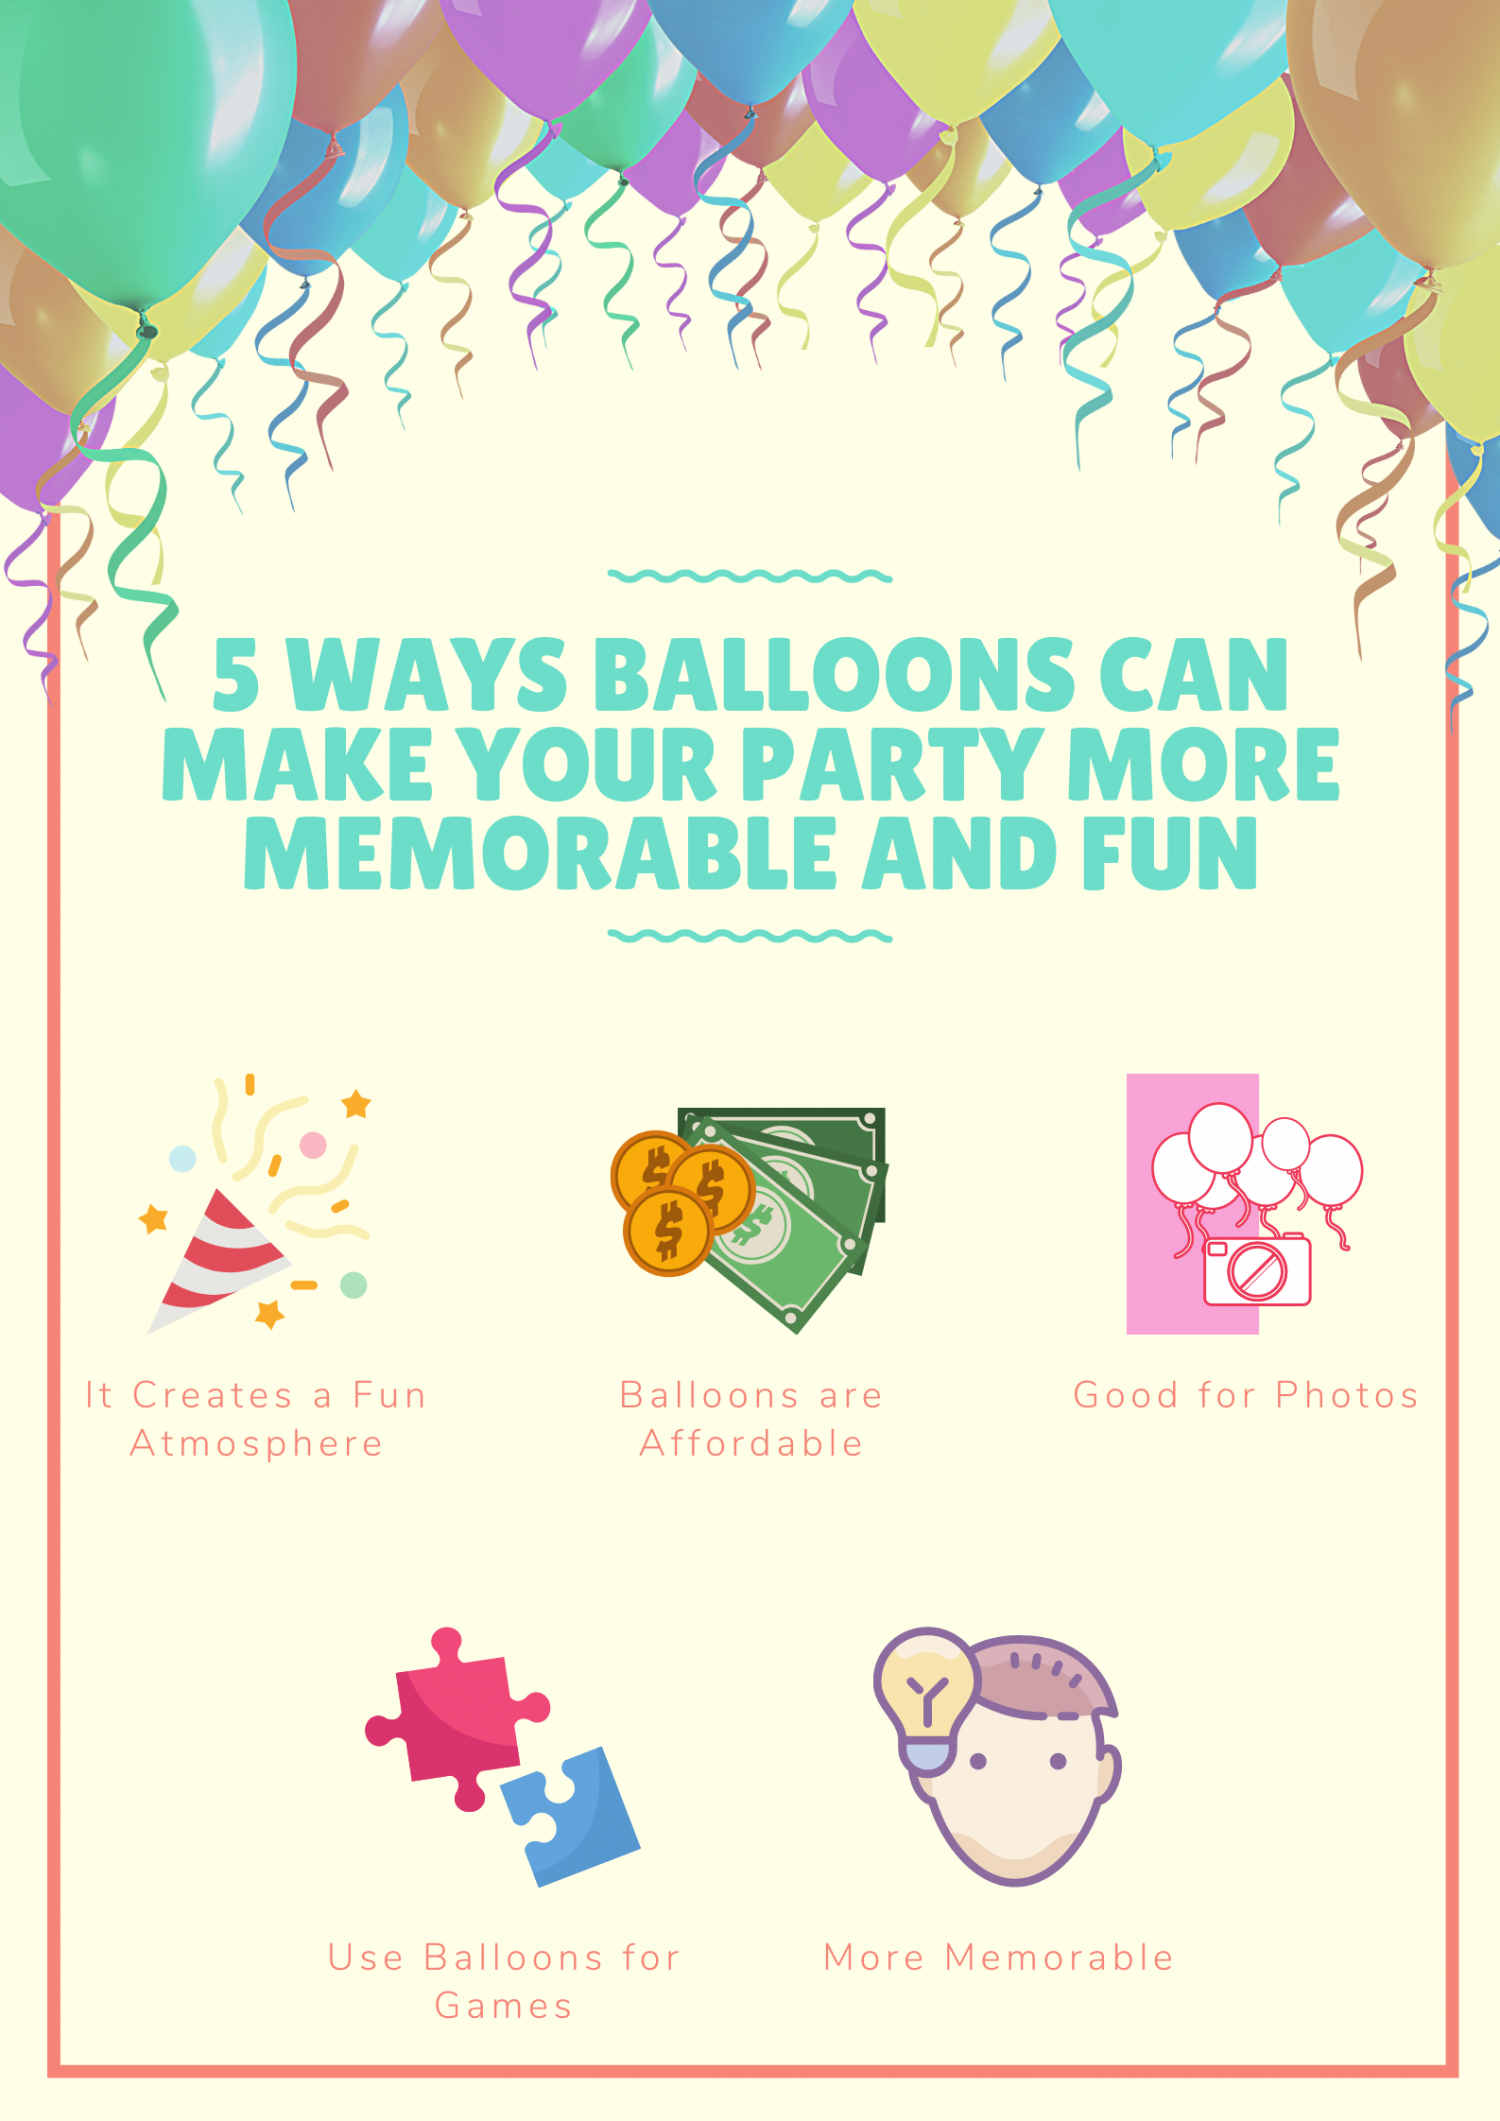 5 Ways Balloons Can Make Your Party More Memorable and Fun Infographic